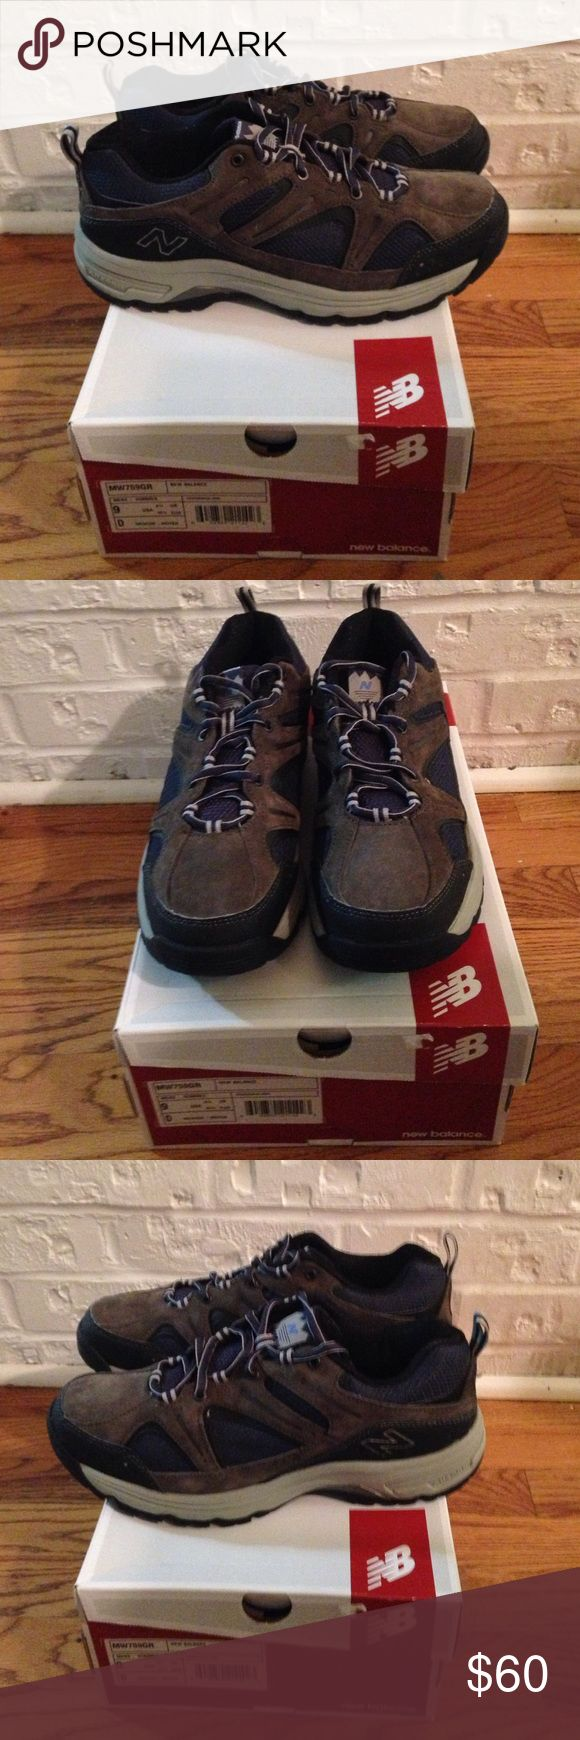 Men's New Balance Country Walking Shoe These shoes are brand new in their original box.  They are navy blue and a greenish tan. New Balance Shoes Athletic Shoes